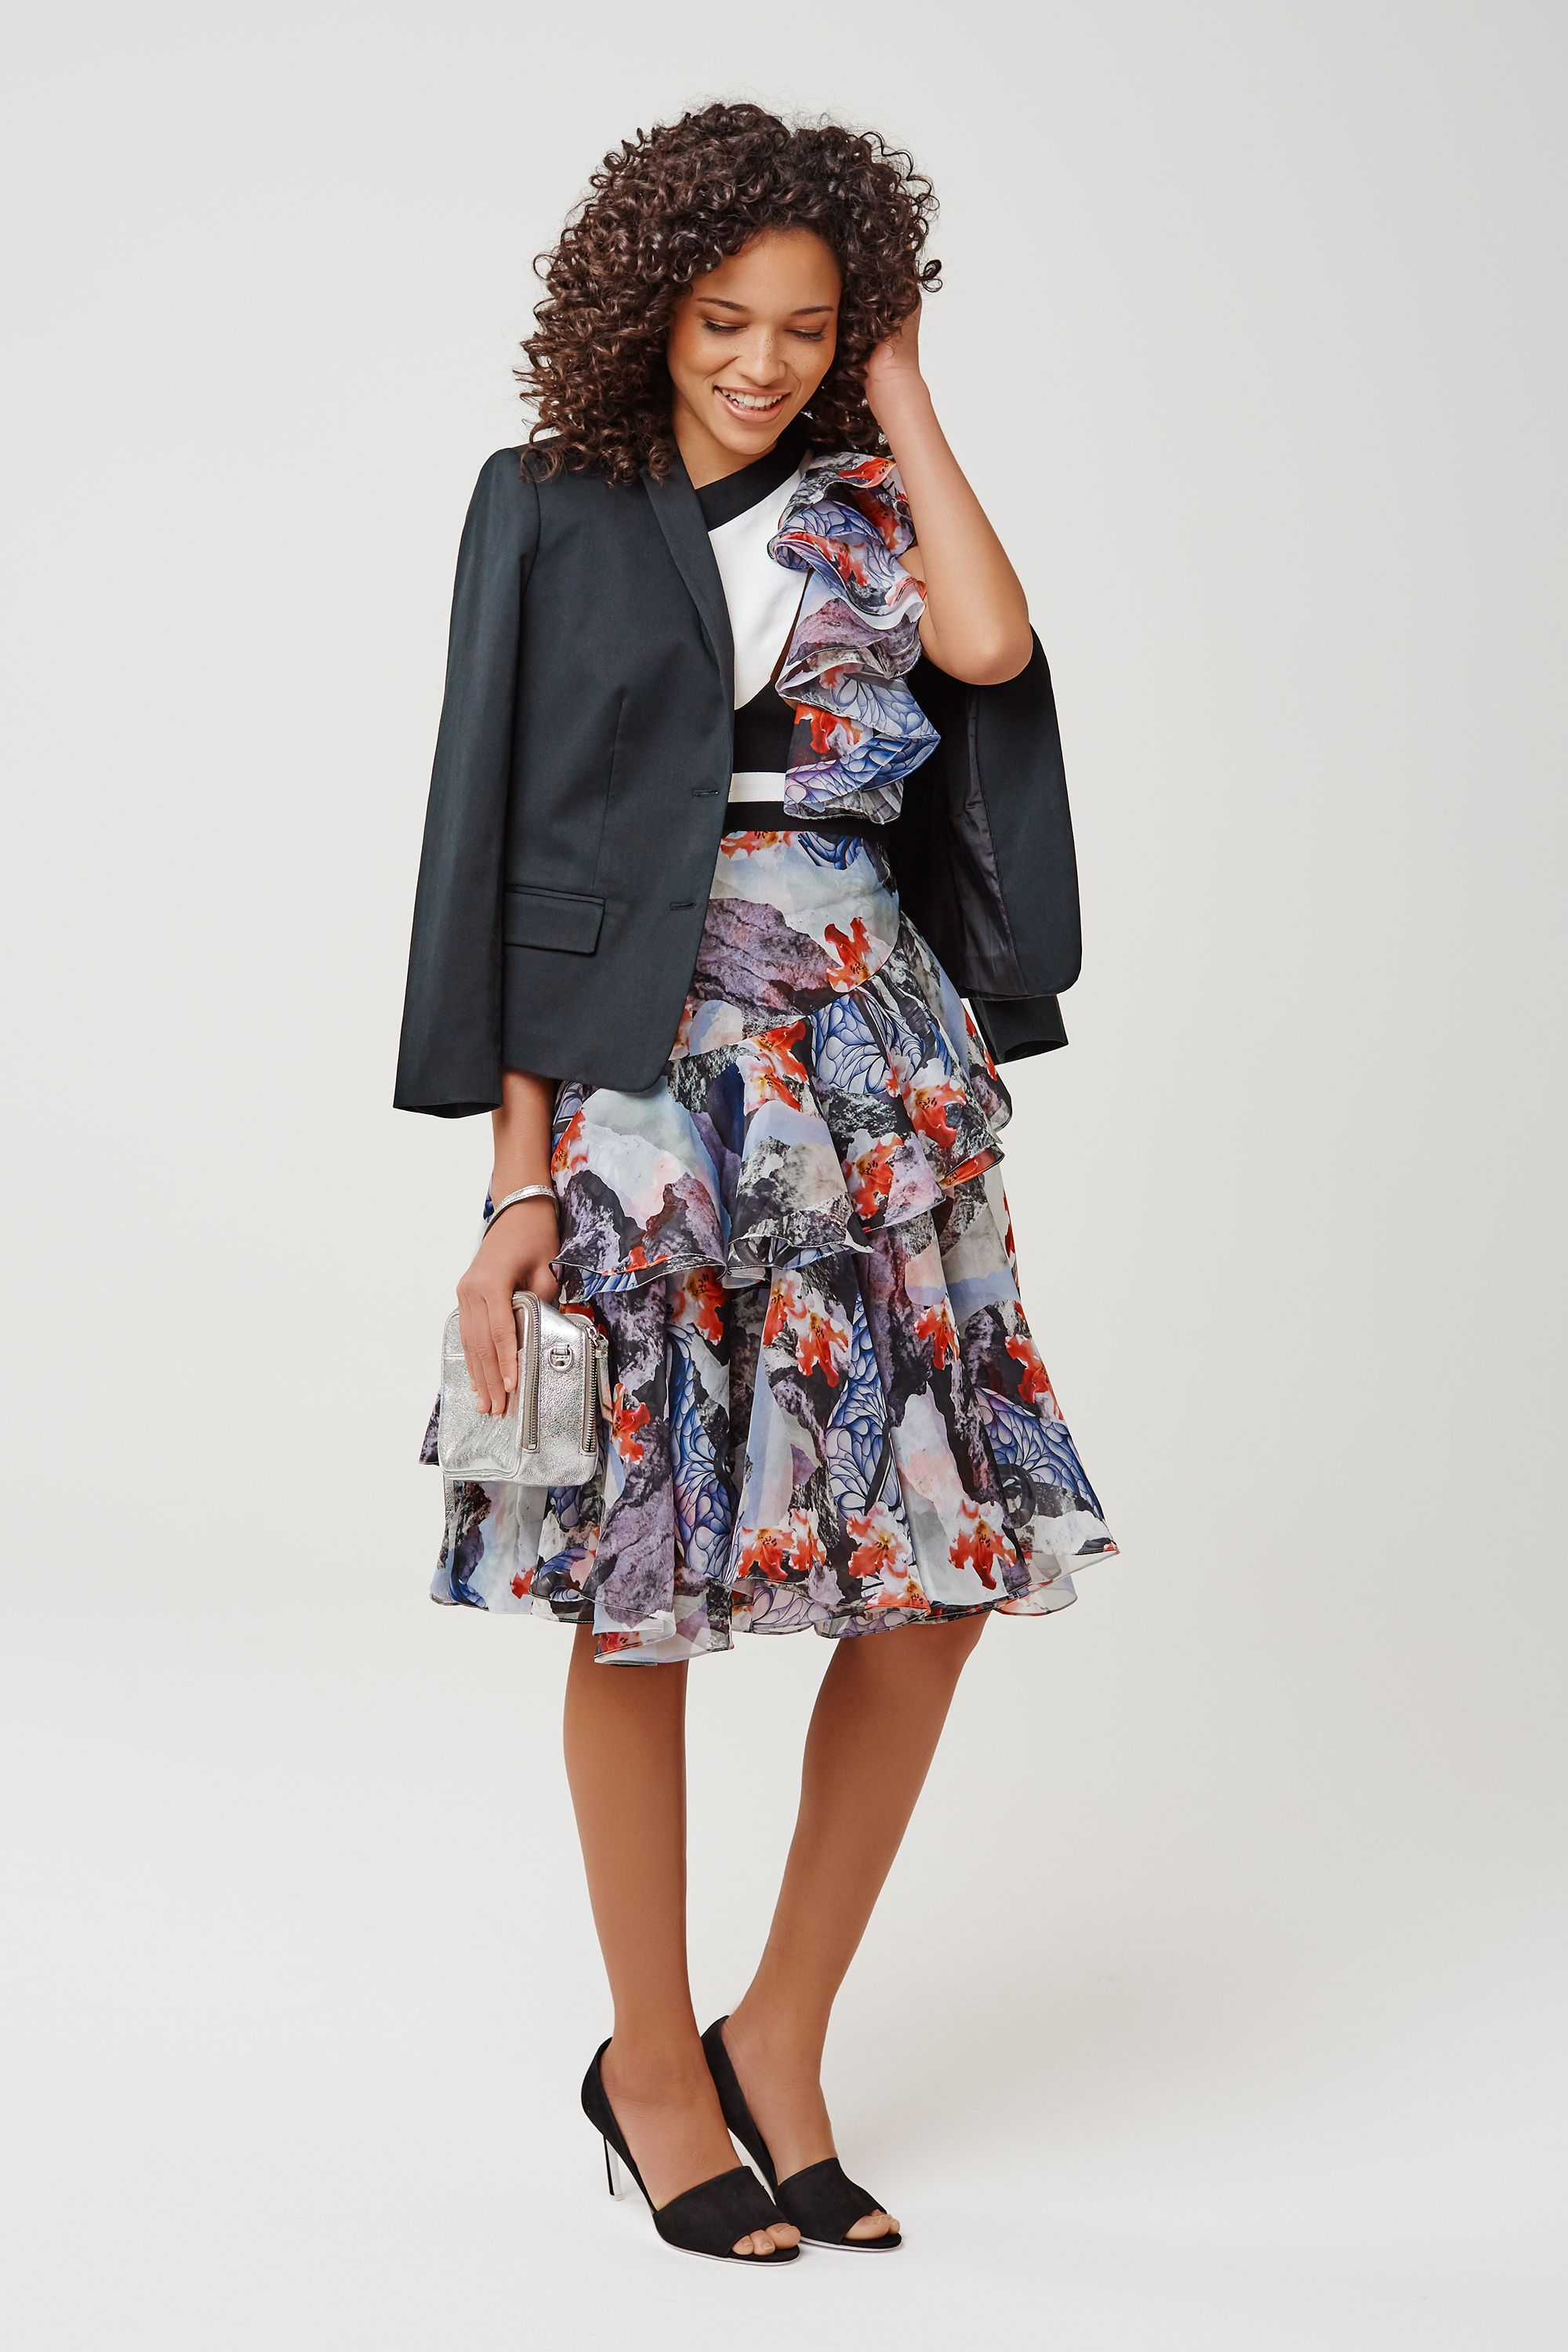 """You know that moment in every rom-com where the guy throws his blazer over the girl's shoulders? You actually don't need a guy to have that moment. Toss a boxy blazer over a cocktail dress to achieve the look, whether you have a man or not. <em>Banana Republic Cropped Sateen Blazer, $165&#x3B; <a target=""""_blank"""" href=""""http://bananarepublic.gap.com/browse/product.do?cid=86577&amp&#x3B;vid=1&amp&#x3B;pid=403669022"""">bananarepublic.com</a></em><em>Prabal Gurung Asymmetrical Ruffle Shoulder Dress, barneys.com</em><em>Banana Republic Harper Silver Double-Zip Camera Crossbody, $130&#x3B; <a target=""""_blank"""" href=""""http://bananarepublic.gap.com/browse/product.do?cid=1006821&amp&#x3B;vid=1&amp&#x3B;pid=288949002"""">bananarepublic.com</a></em><em>Vince Saffron Suede Peep Toe Pump, $395&#x3B; nordstrom.com</em><em></em><em></em><em></em><em></em><em></em><em></em><em></em><em></em><em></em><em></em><em></em><em></em><em></em><em></em><em></em><em></em><em></em><em></em><em></em><em></em><em></em><em></em><em></em><em></em><em></em><em></em><em></em><em></em><em></em><em></em><em></em><em></em><em></em><em></em><em></em><em></em><em></em><em></em><em></em><em></em><em></em><em></em><em></em><em></em><em></em><em></em><em></em><em></em><em></em><em></em><em></em><em></em><em></em><em></em><em></em><em></em><em></em><em></em>"""